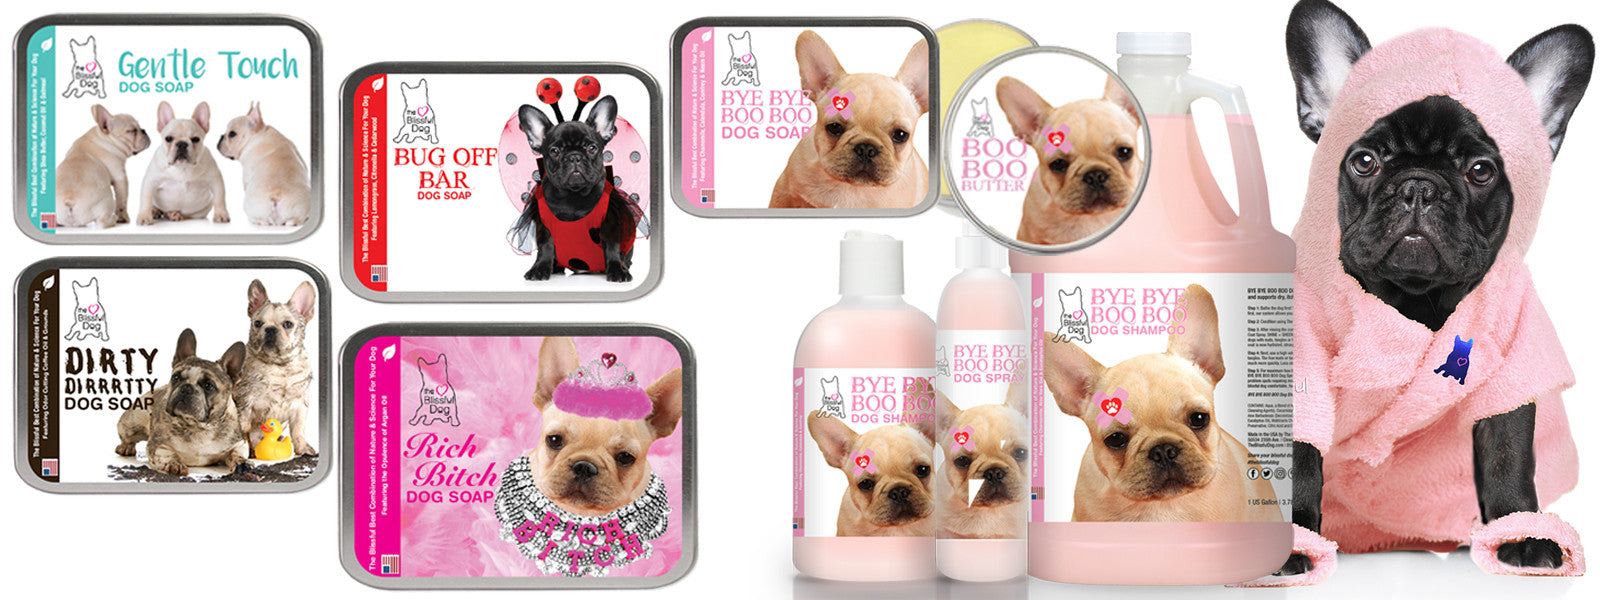 FRENCH BULLDOG SOAP